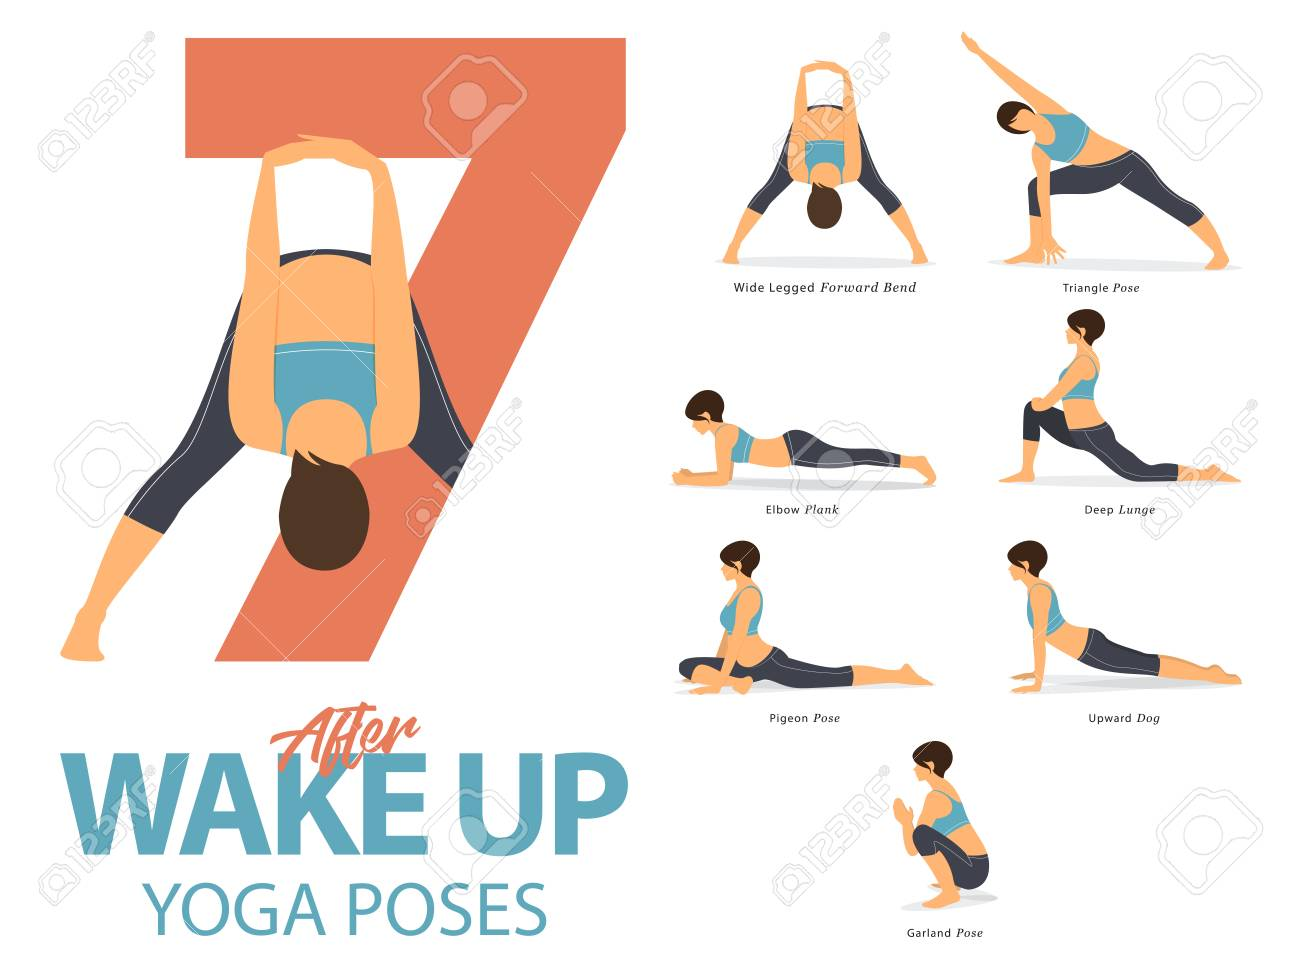 A set of yoga postures female figures for Infographic 7 Yoga poses for exercise after wake up in flat design. Vector Illustration. - 88069585